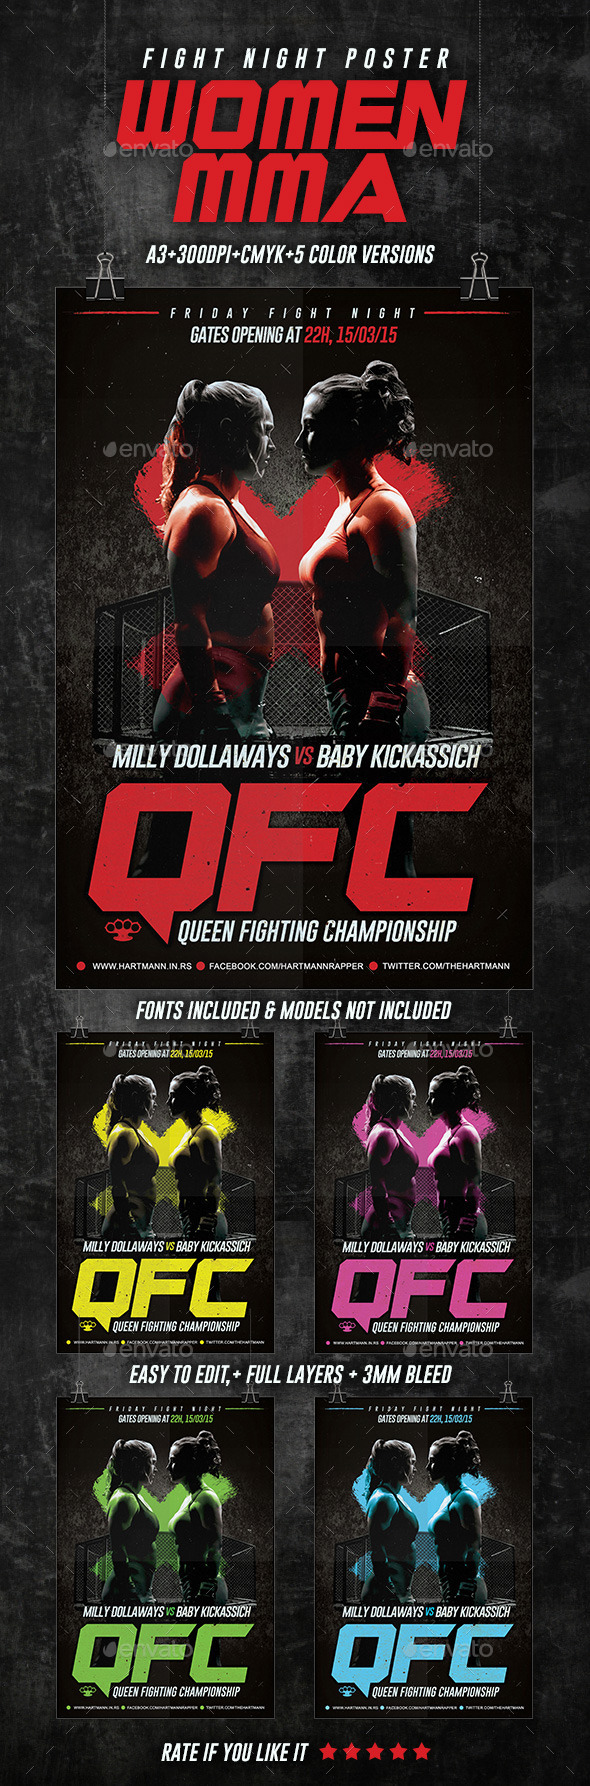 Women MMA Fight Poster - Sports Events